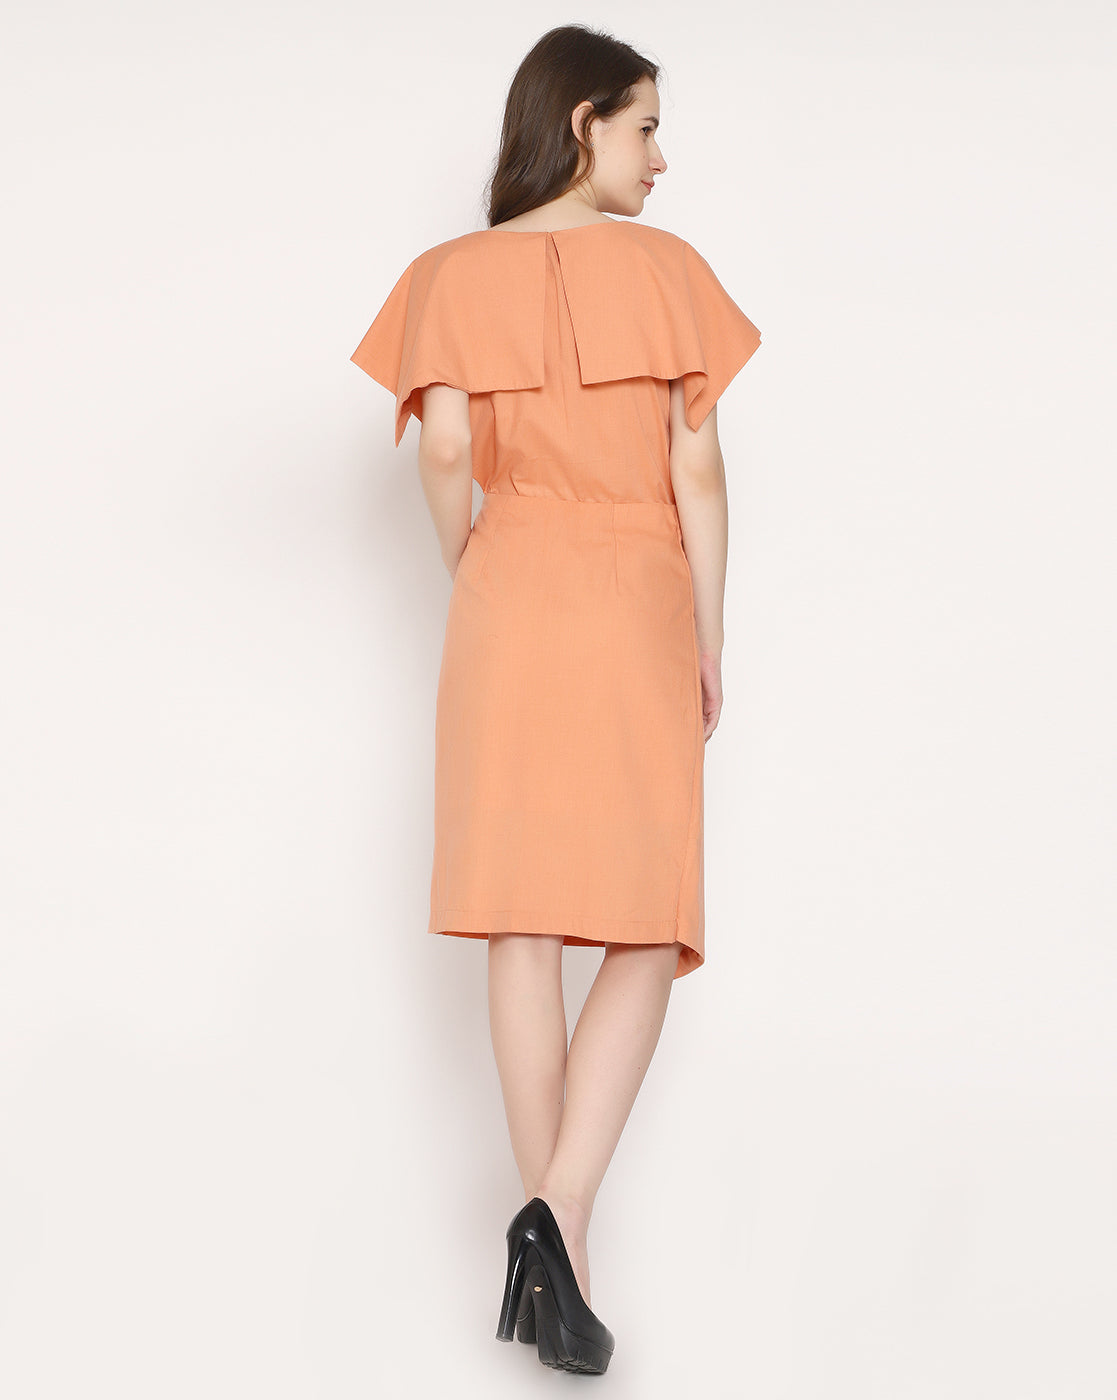 The A la Mode Shirt - Coral Orange